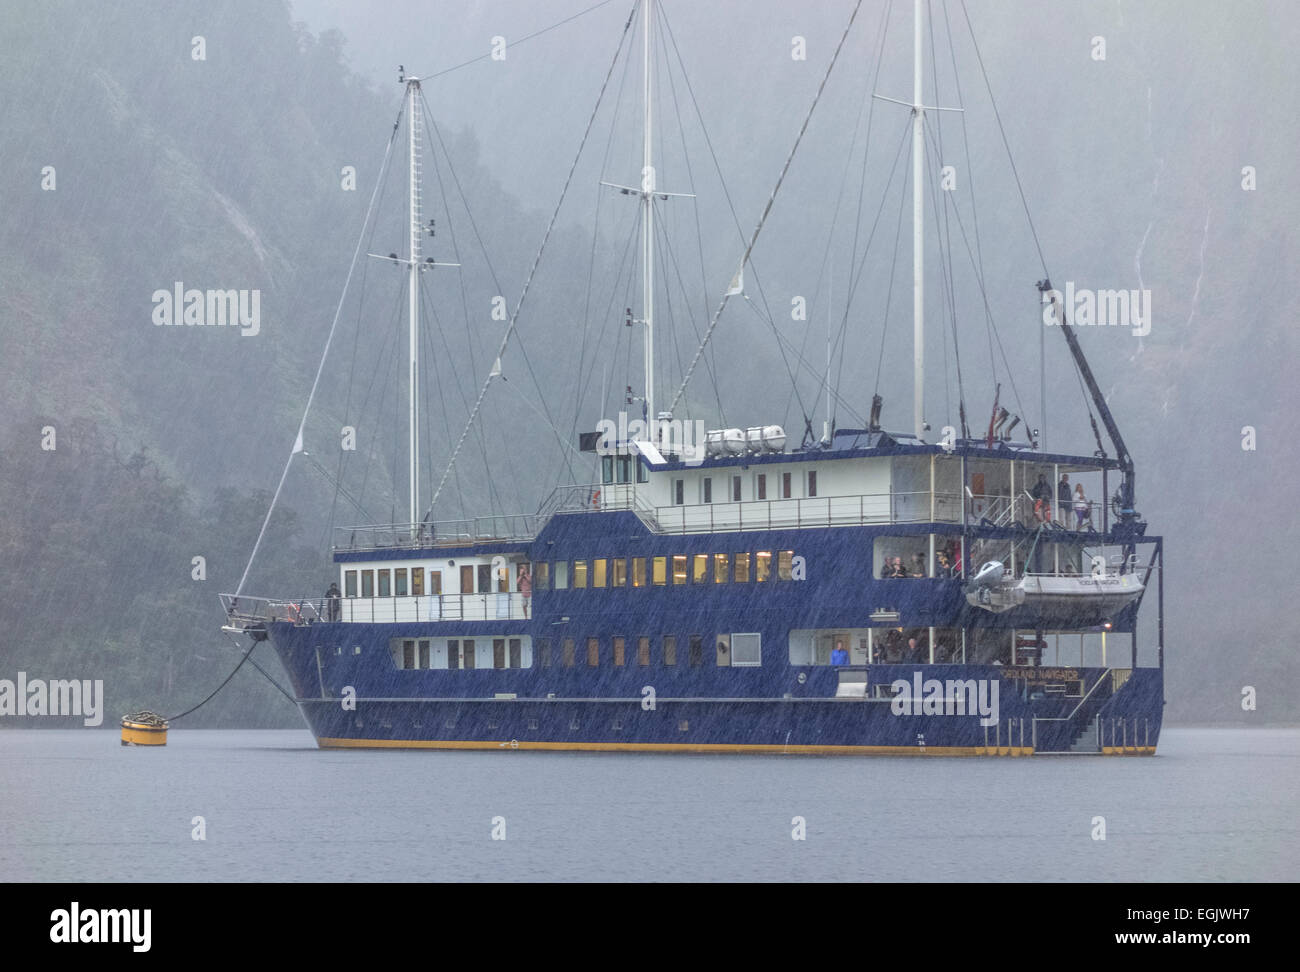 Overnight Doubtful Sound Cruise in the pouring rain in Fiordland National Park New Zealand. One of the wettest places - Stock Image